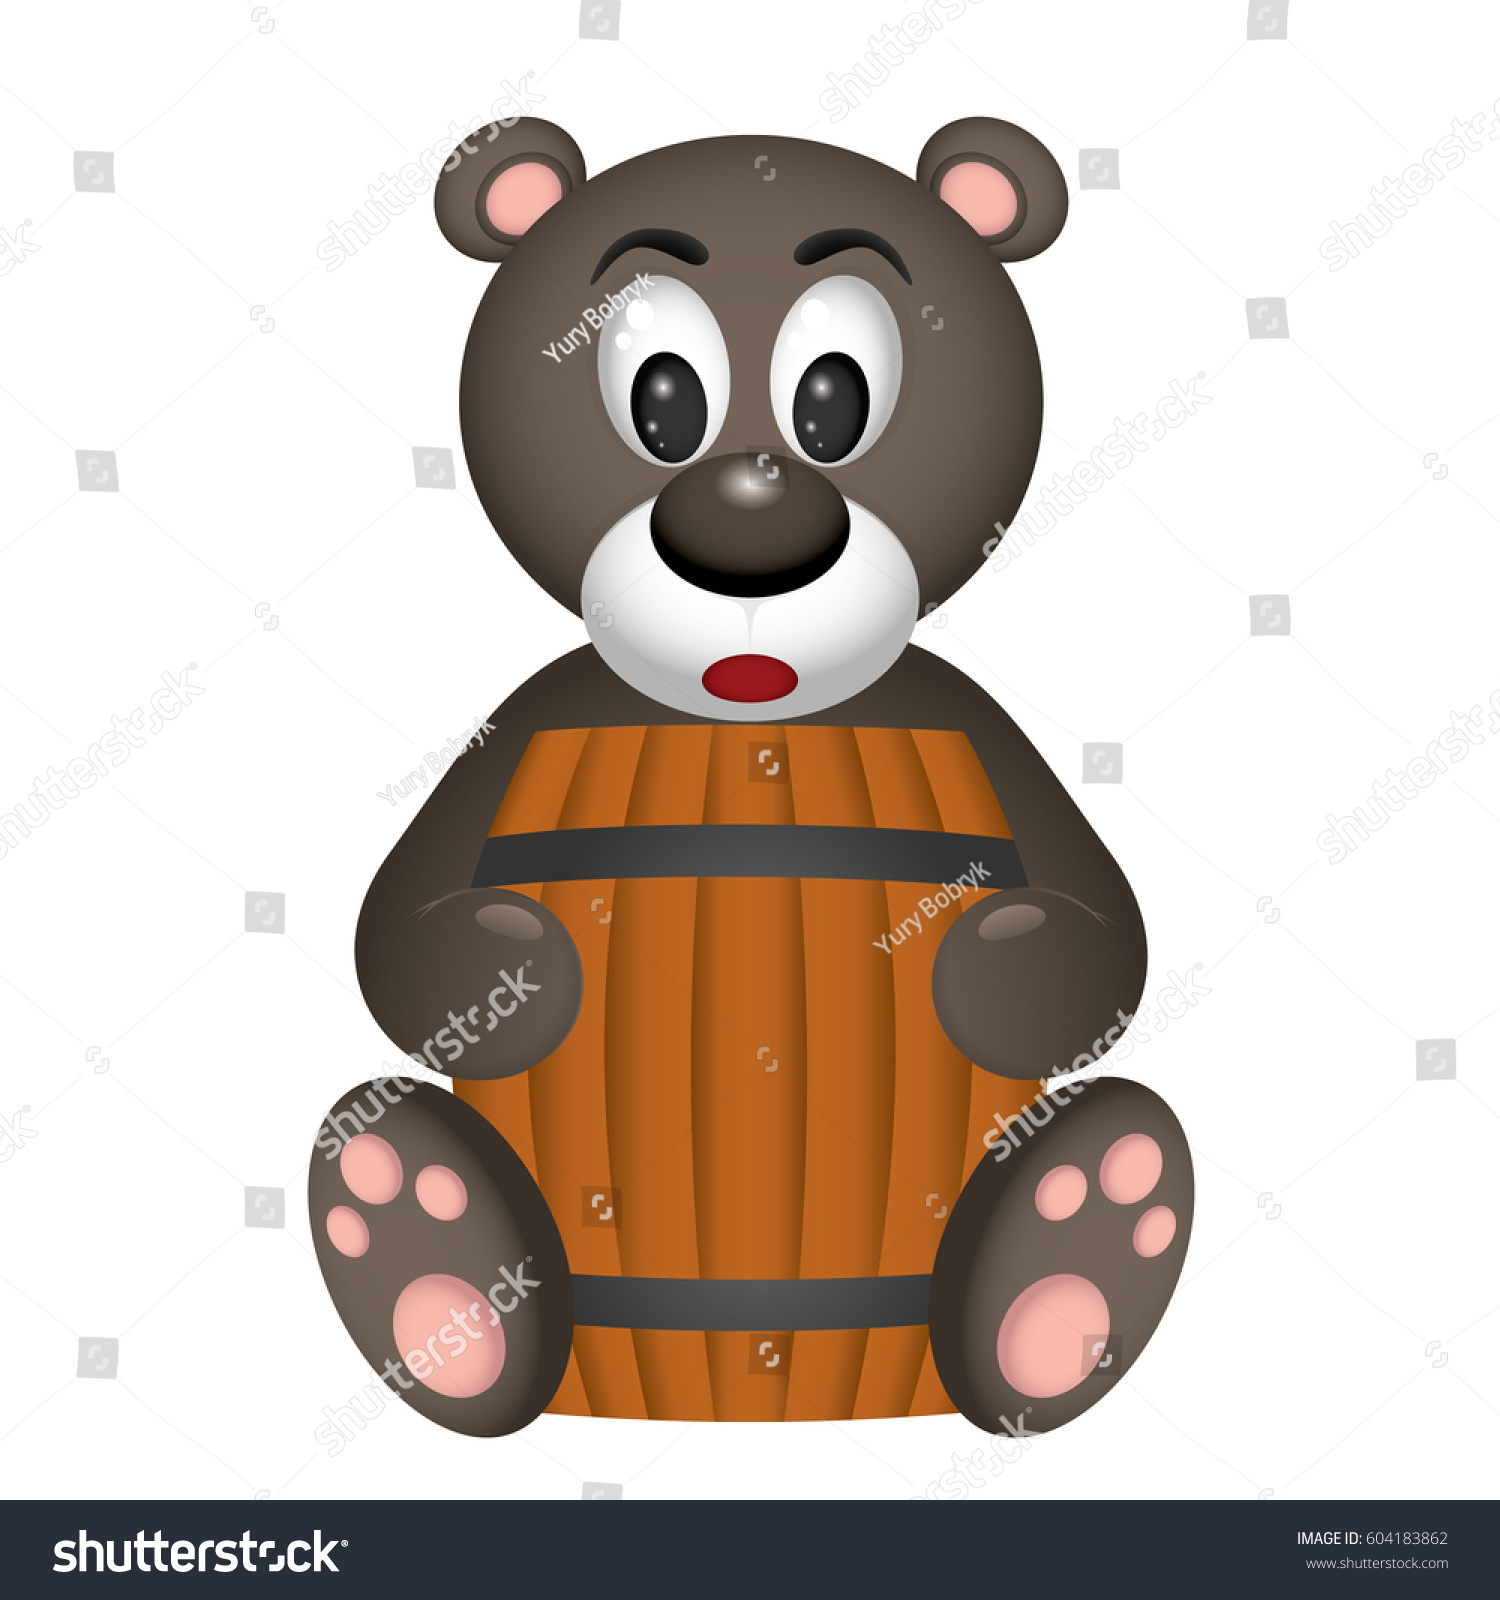 Cute Bear Sits With Barrel Of Honey And Spoon Stock Vector - Illustration  of spoonnvector, book: 106725019